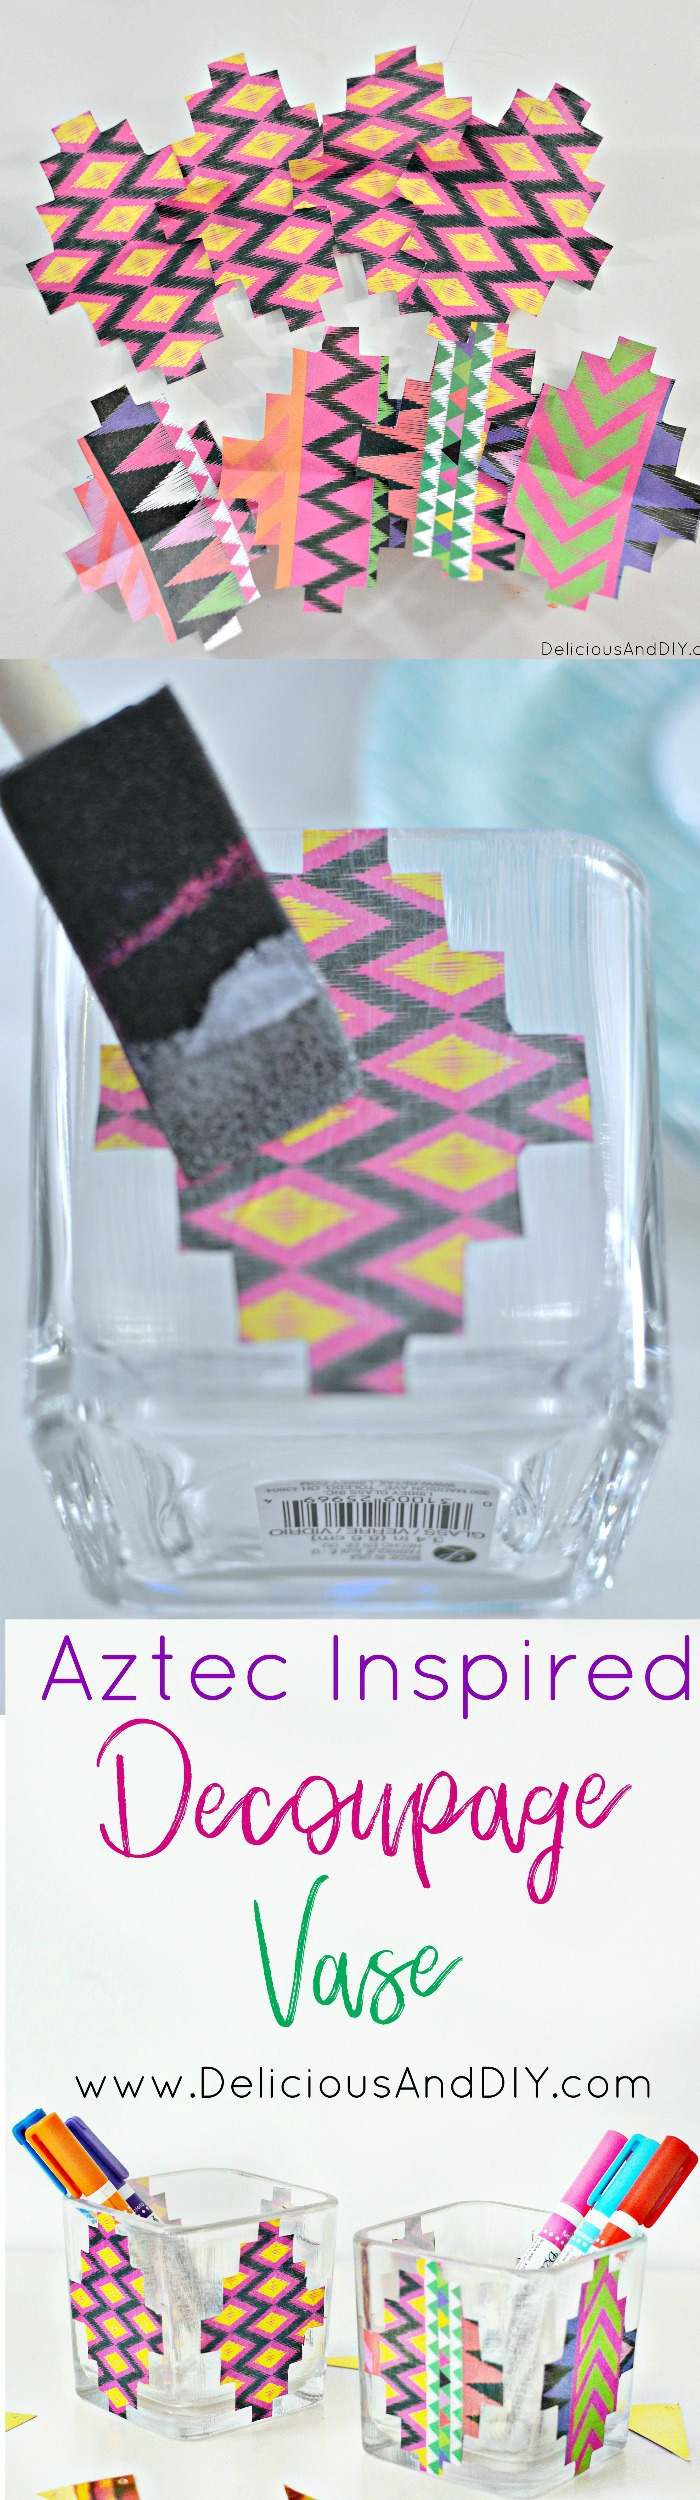 Create these beautiful Aztec Inspired Decoupage Vase just by using Dollar Store vases and beautiful decoupage paper|Decoupaged Vase| Decoupage Bowl Idea| Vase Ideas| DIY Crafts| Quick and Easy DIY Crafts| Centerpiece Ideas| Decoupage Ideas| Aztec Inspired Bowls| Aztec Pattern| Vase Makeover Ideas